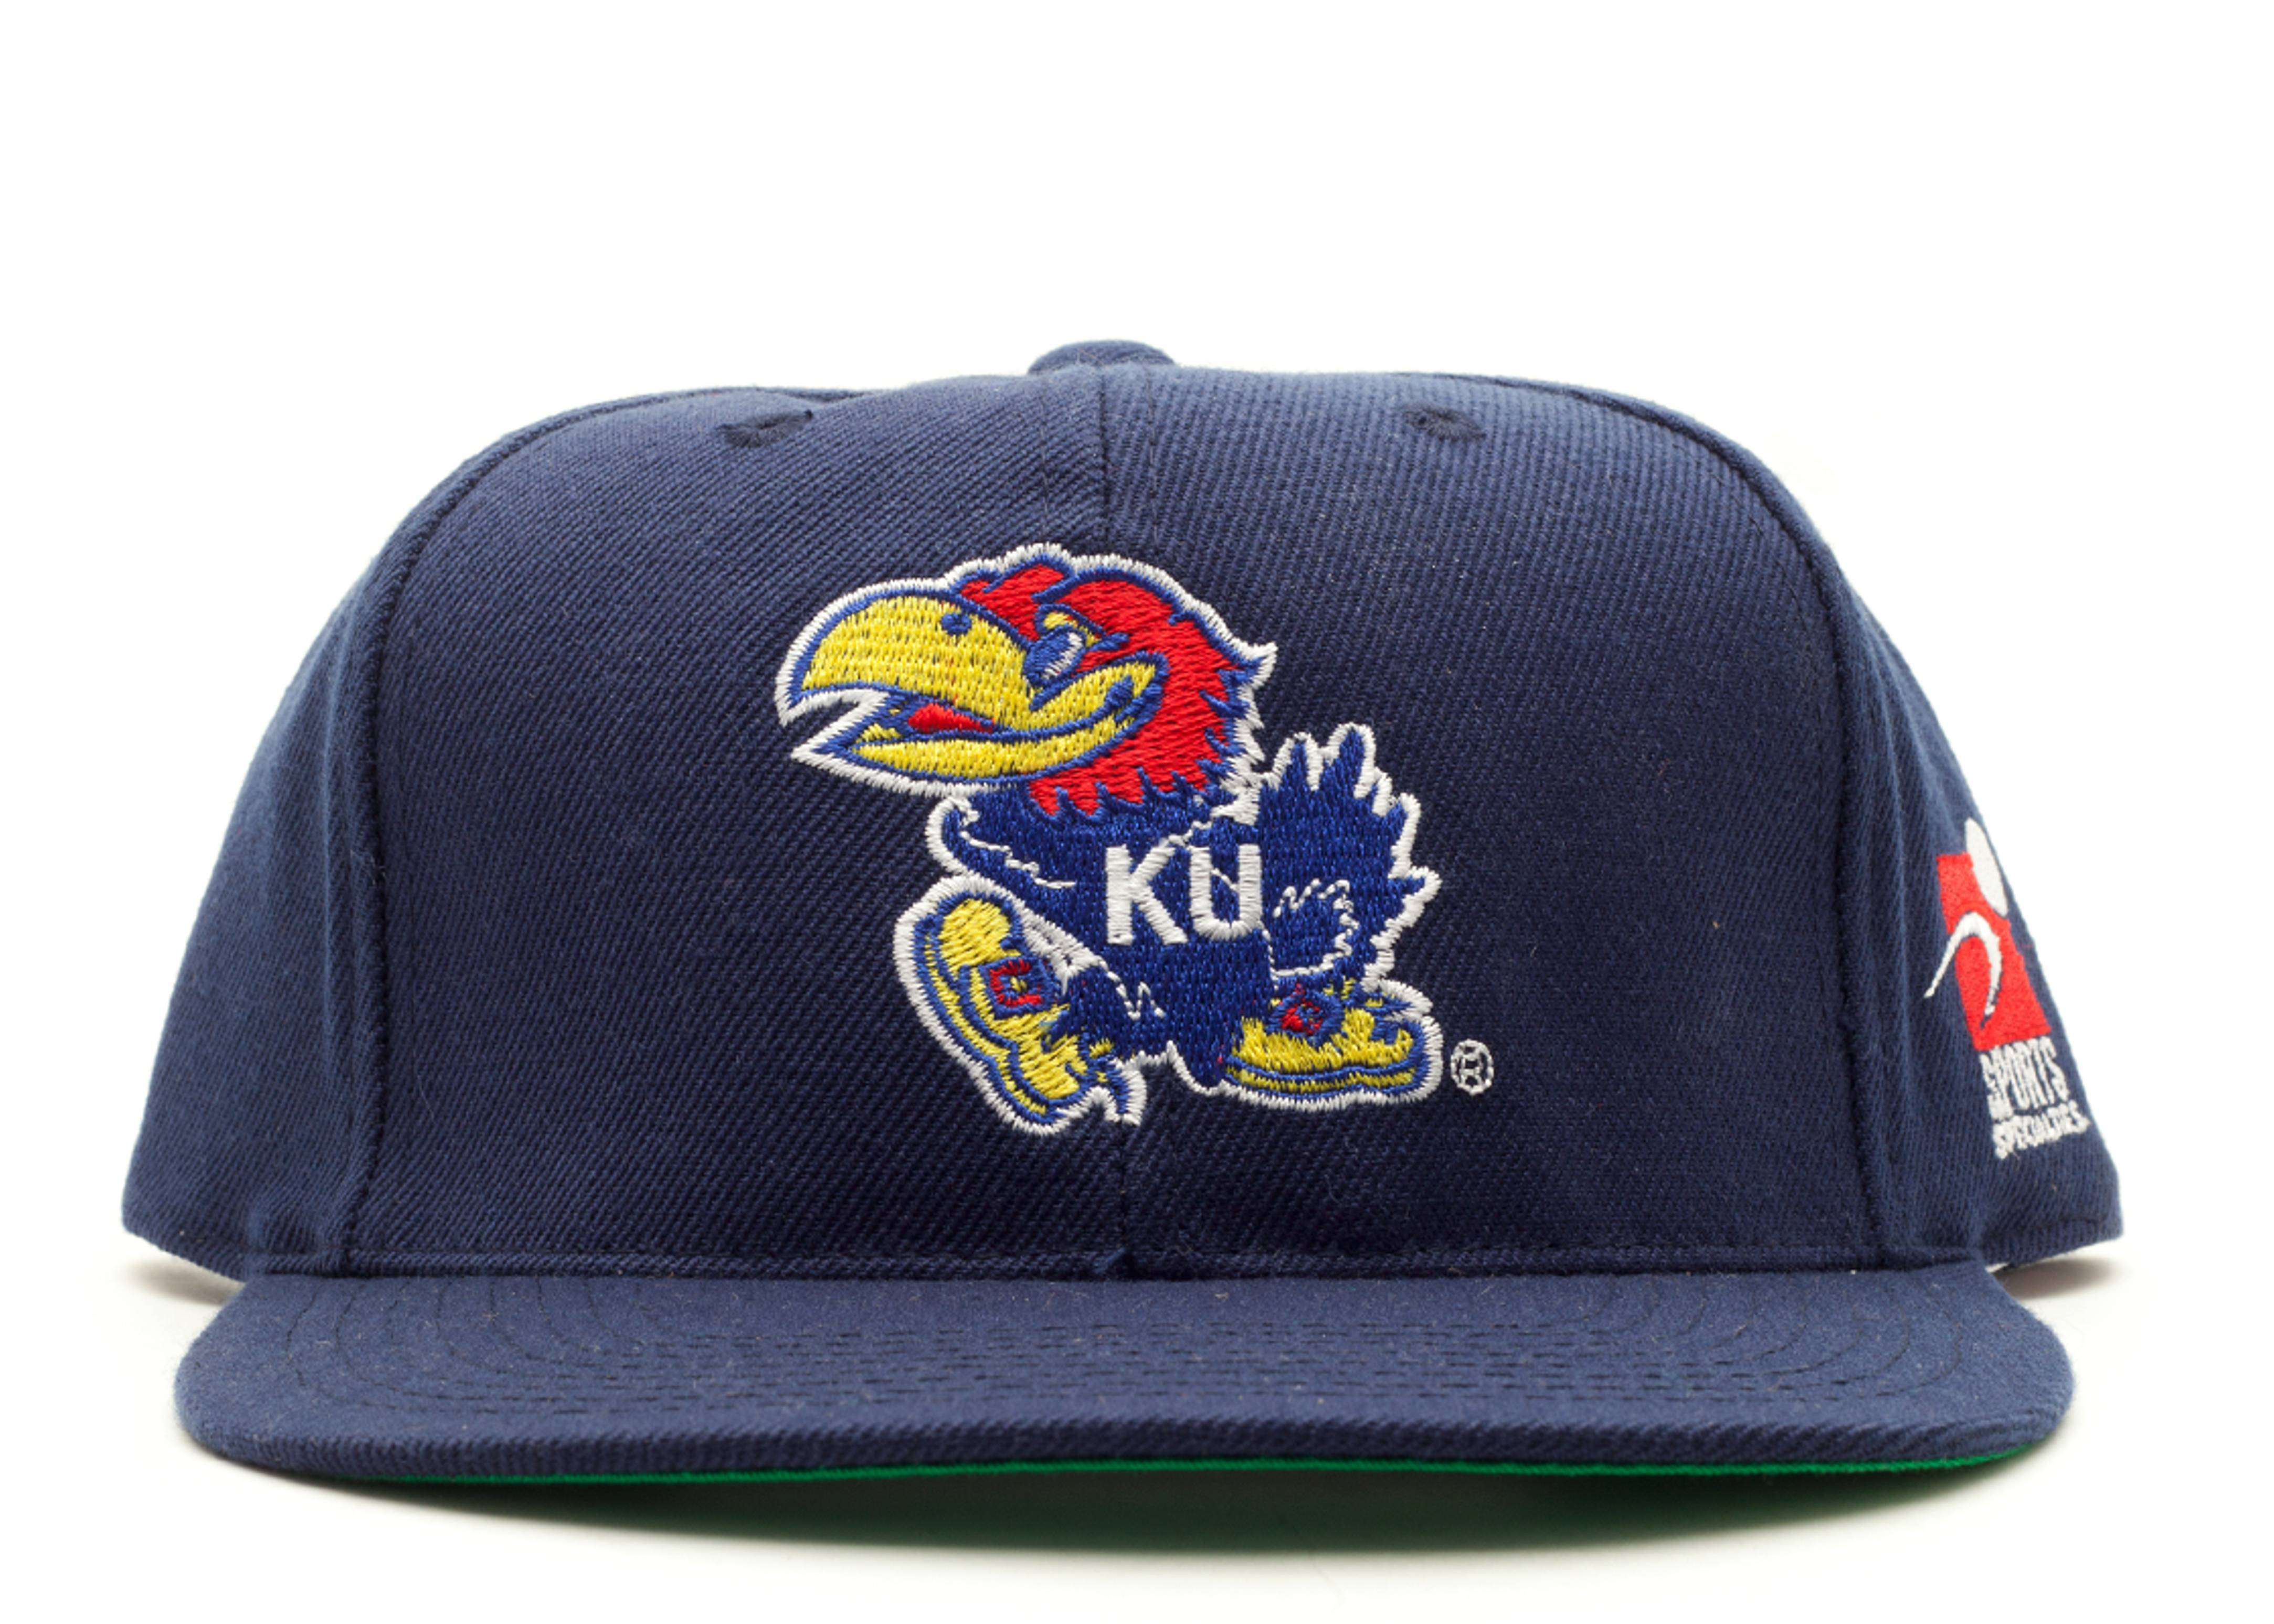 kansas university snap-back